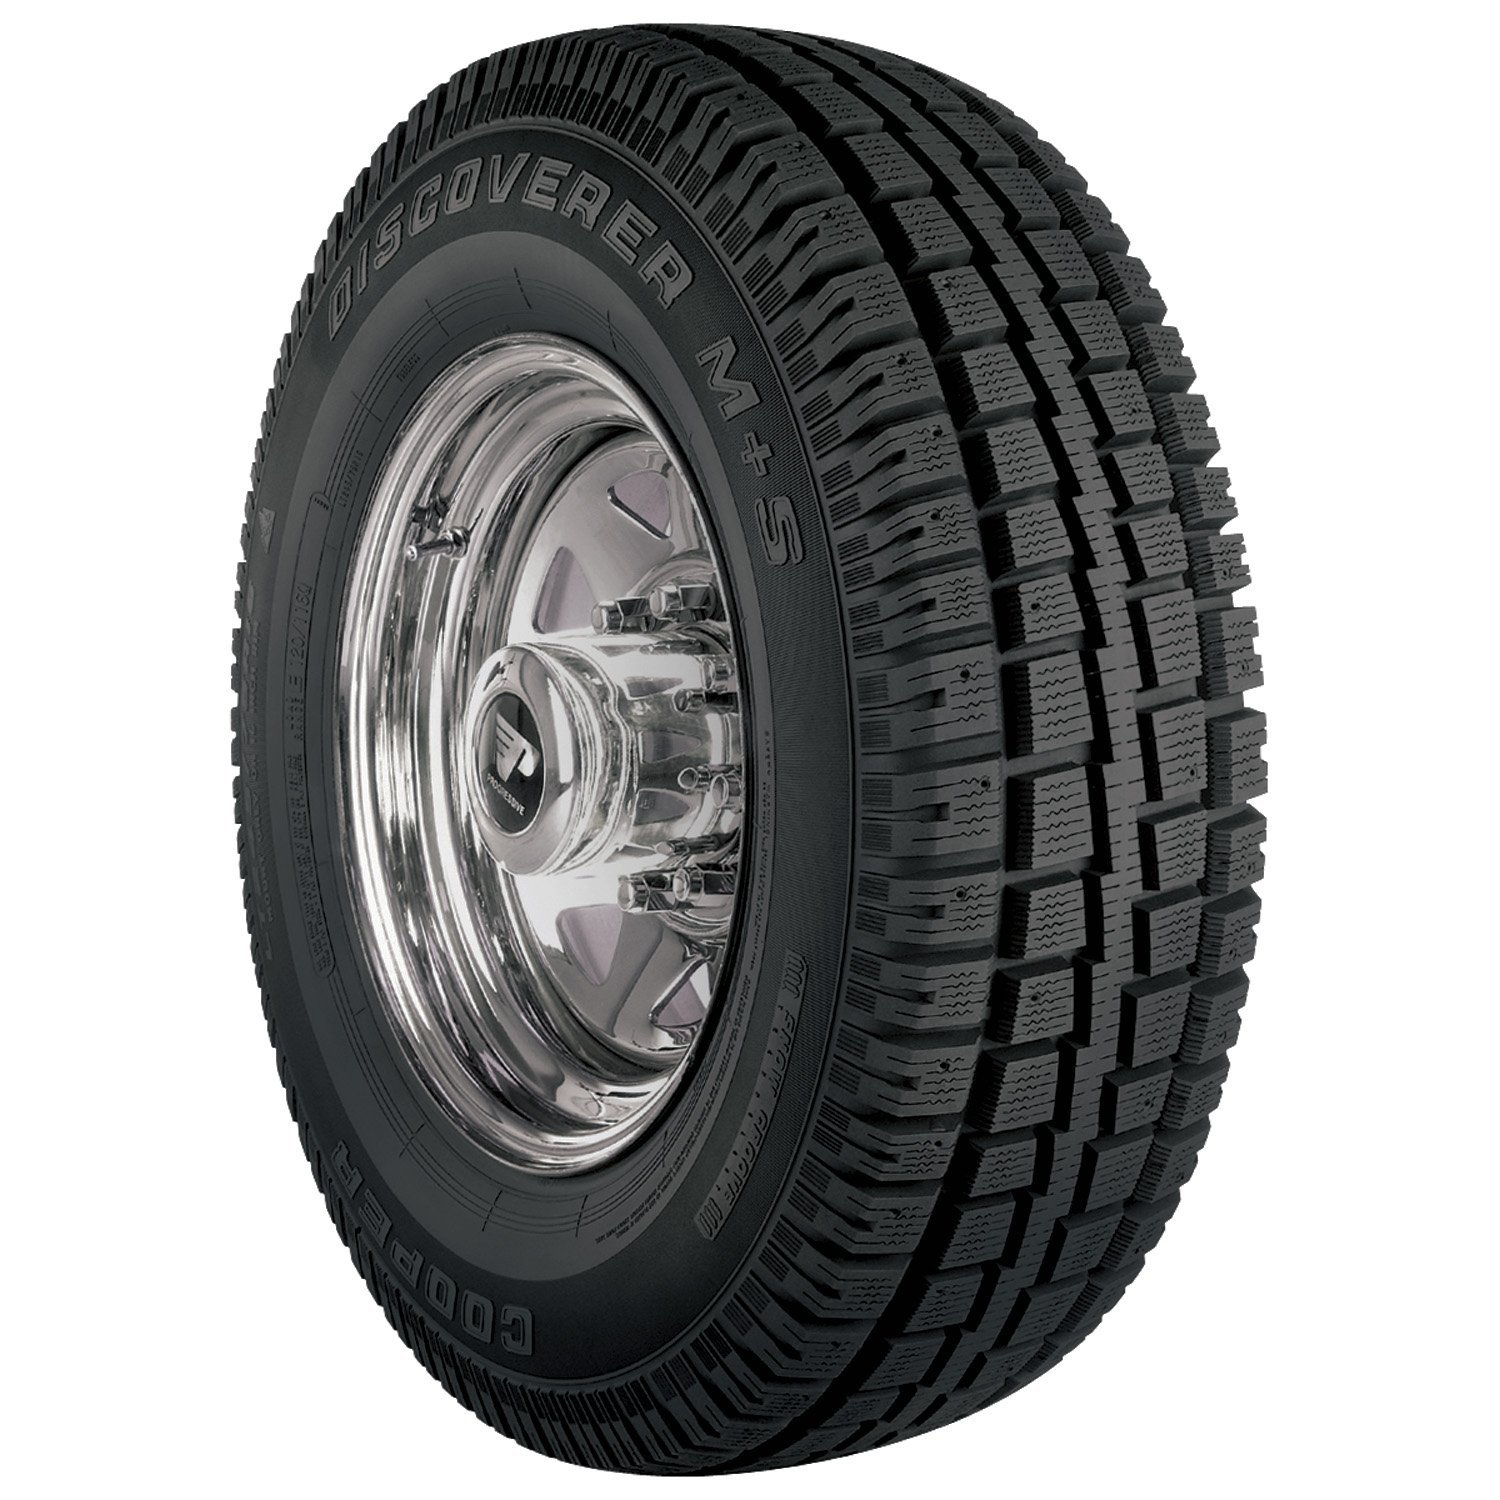 Gomme Nuove Cooper Tyres 255/50 R19 107V DISCOVERER WINTER XL (100%) pneumatici nuovi Invernale